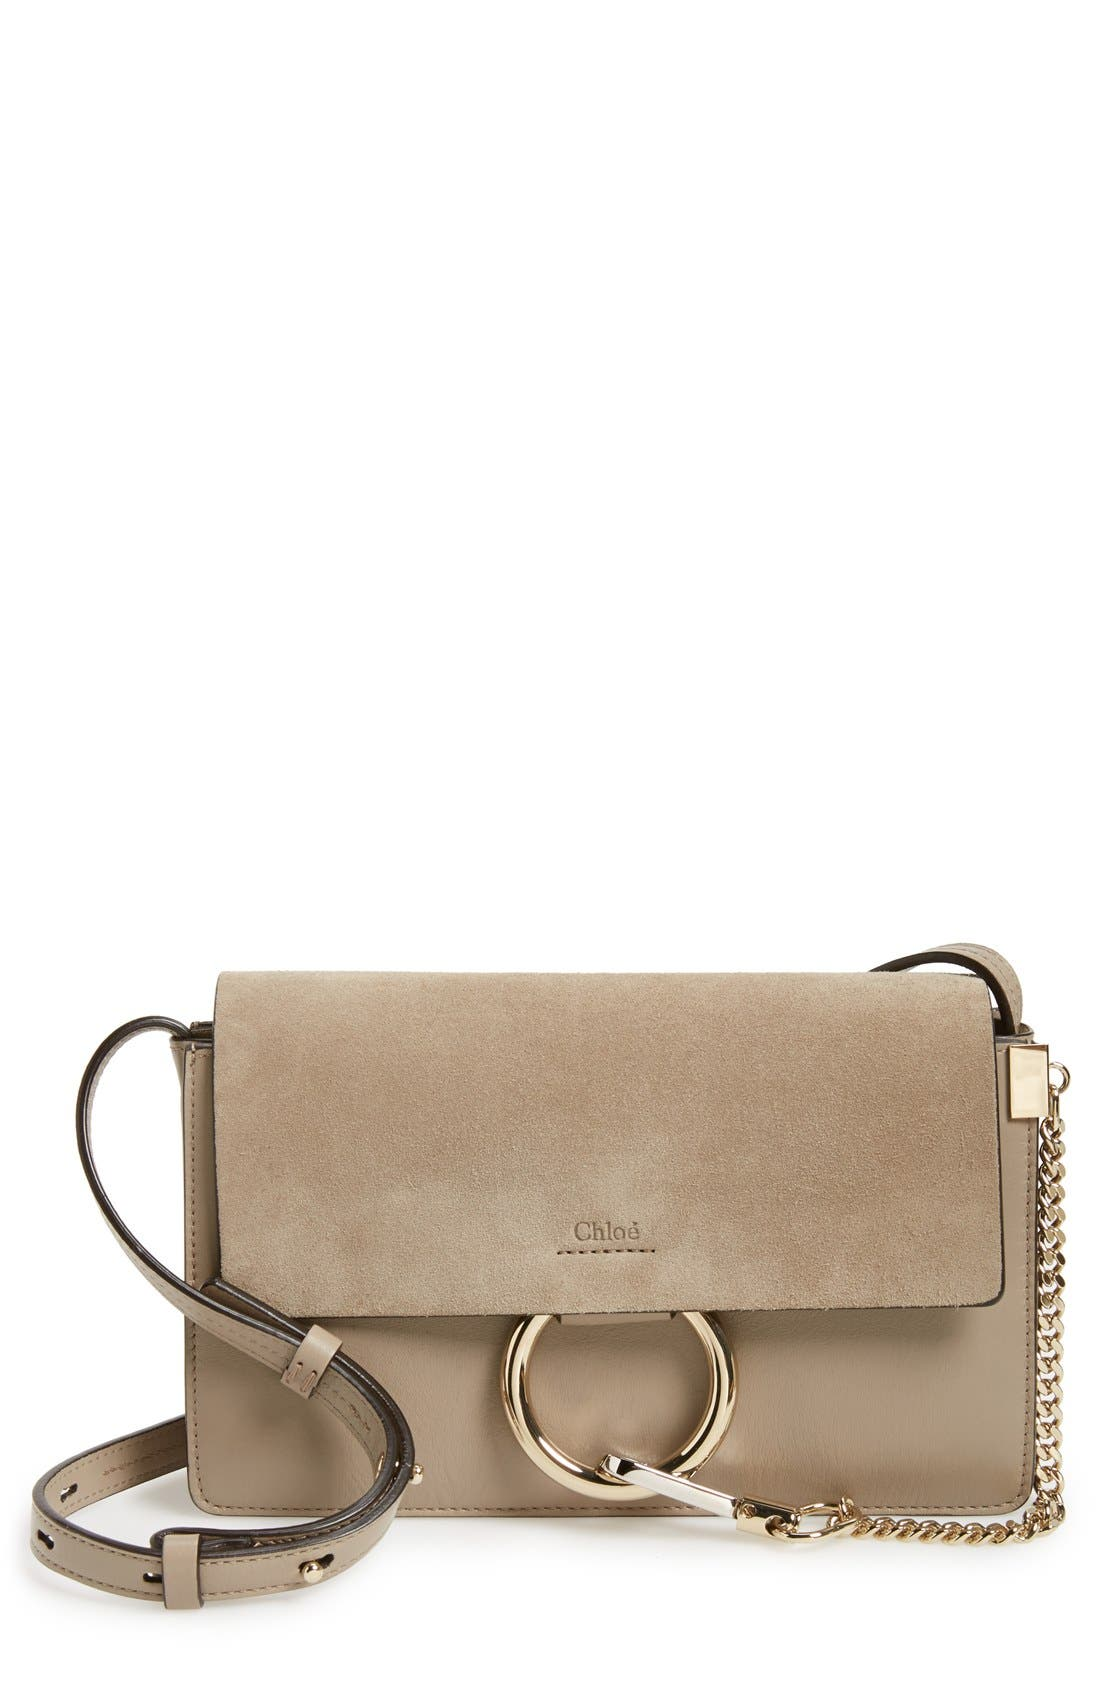 CHLOÉ, Small Faye Leather Shoulder Bag, Main thumbnail 1, color, MOTTY GREY